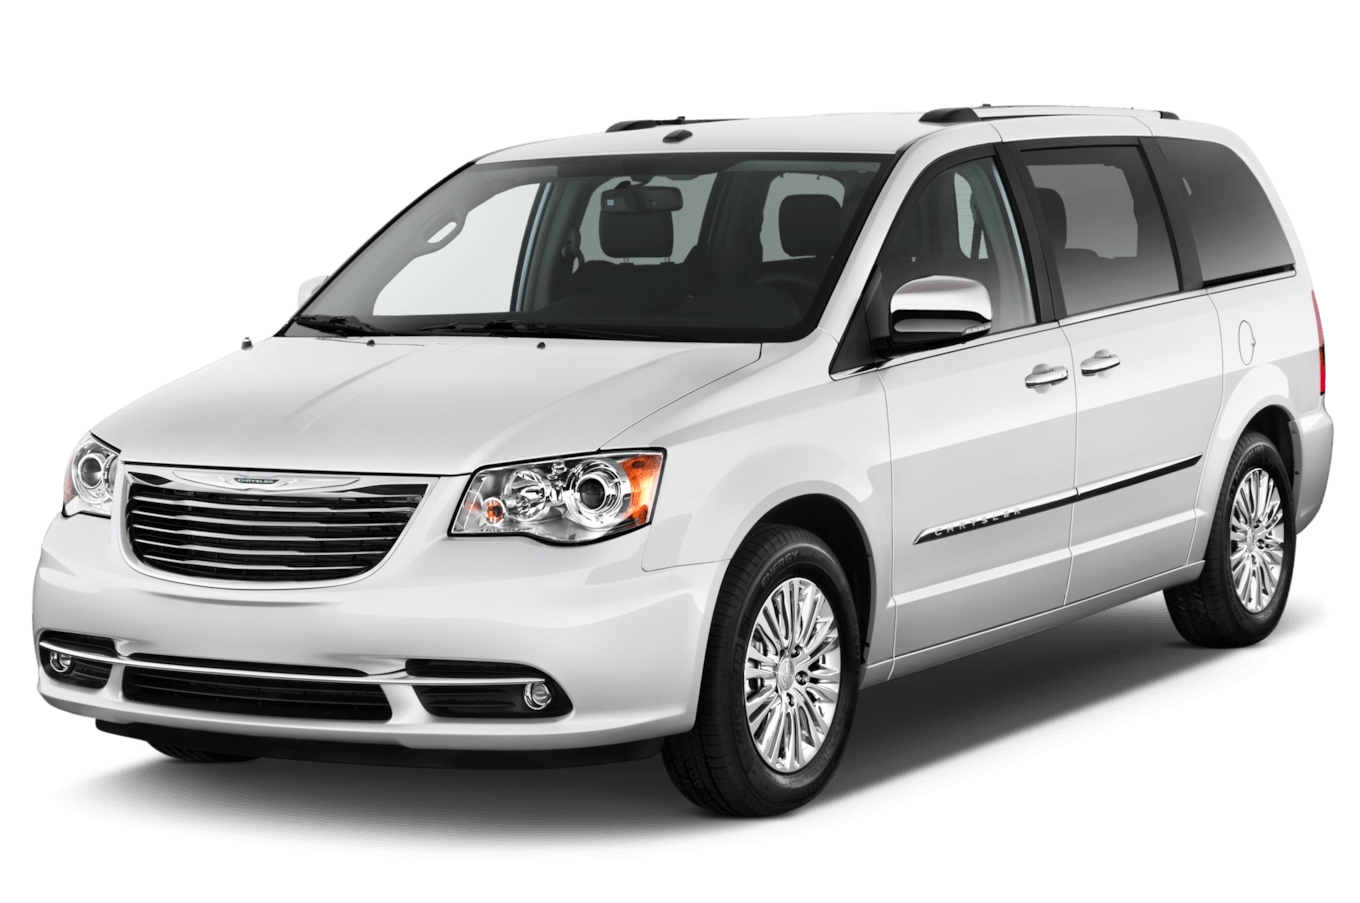 hight resolution of new 2012 dodge caravan and chrysler town country 36 fuse box 2012 chrysler town and country fuse box diagram 2012 chrysler town and country fuse box